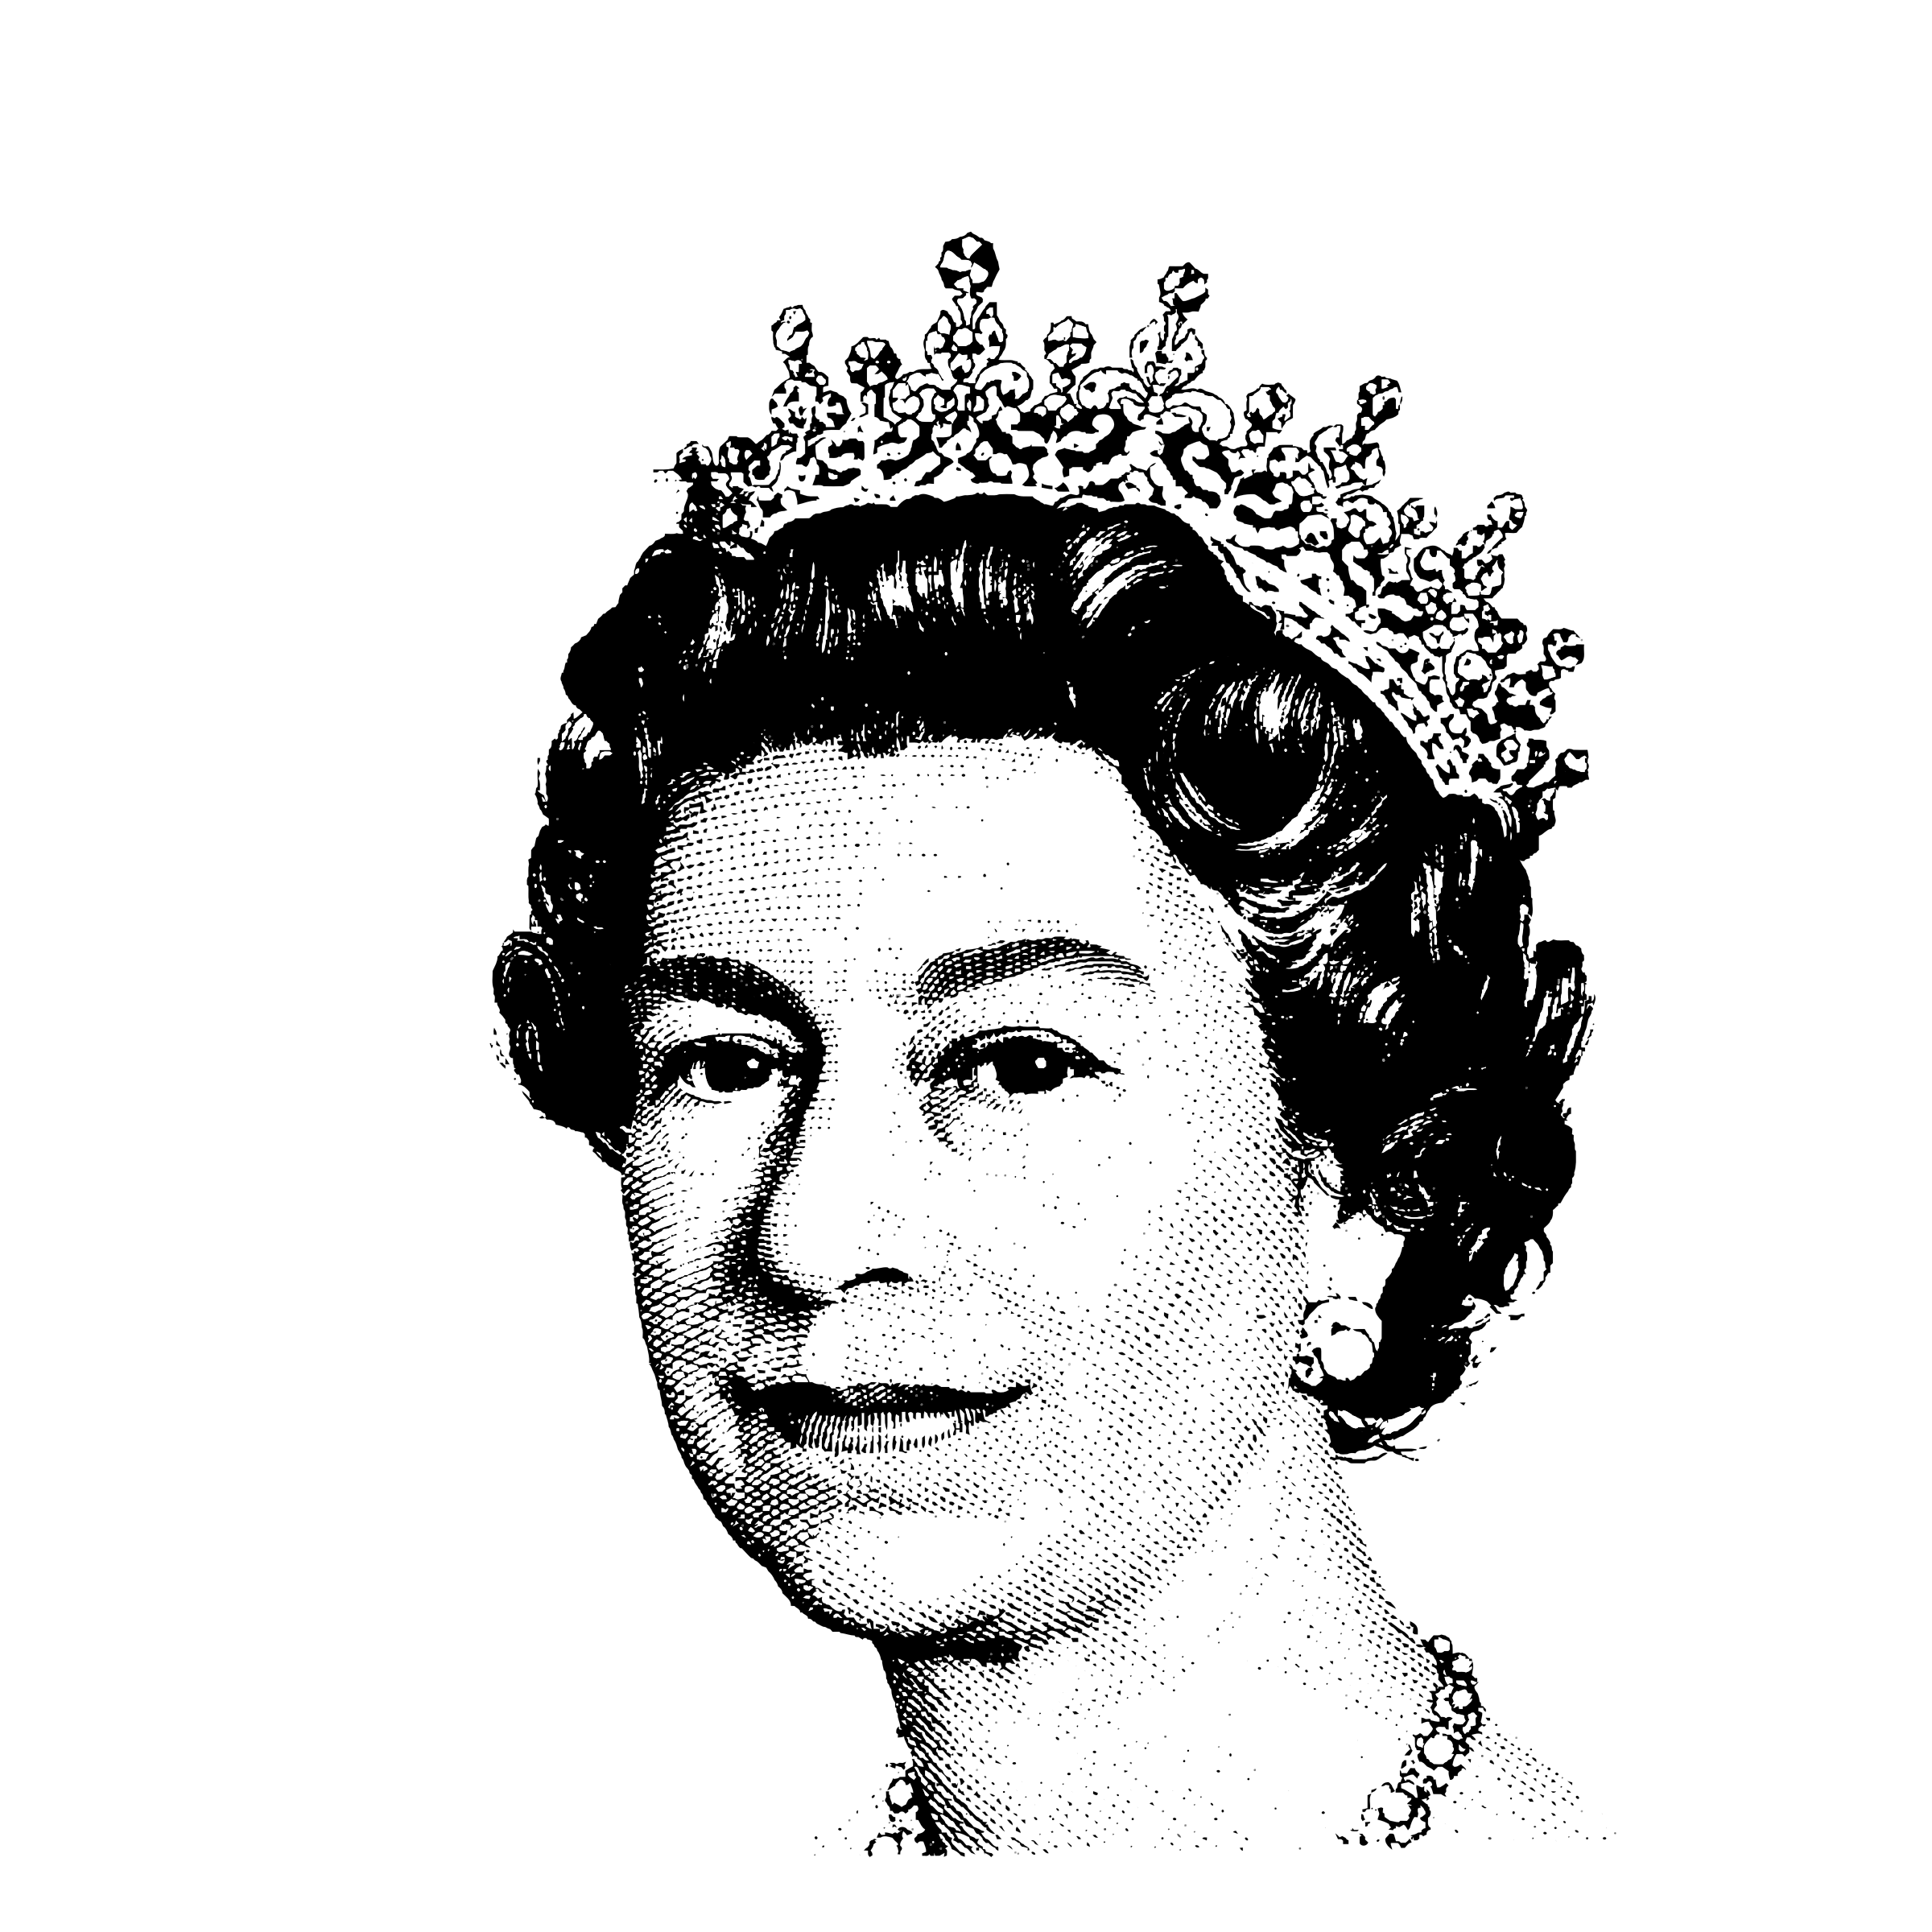 Queen Elizabeth II by GDJ